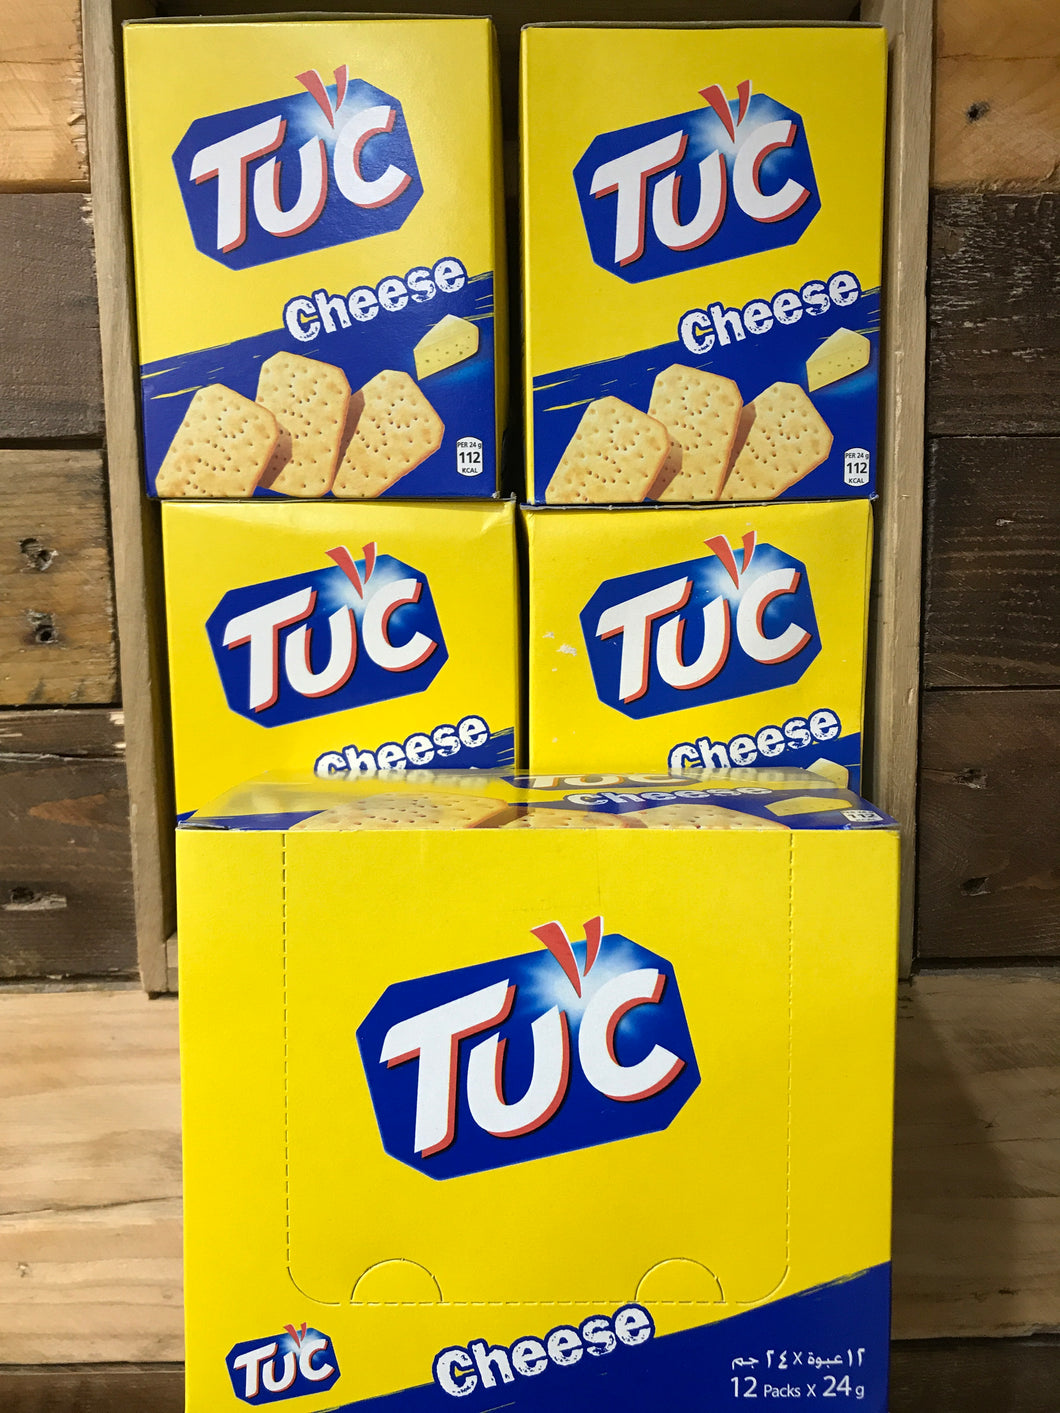 60x Packs of TUC Biscuits Cheese Flavour Snack 6x Biscuit Pack (12x24g)